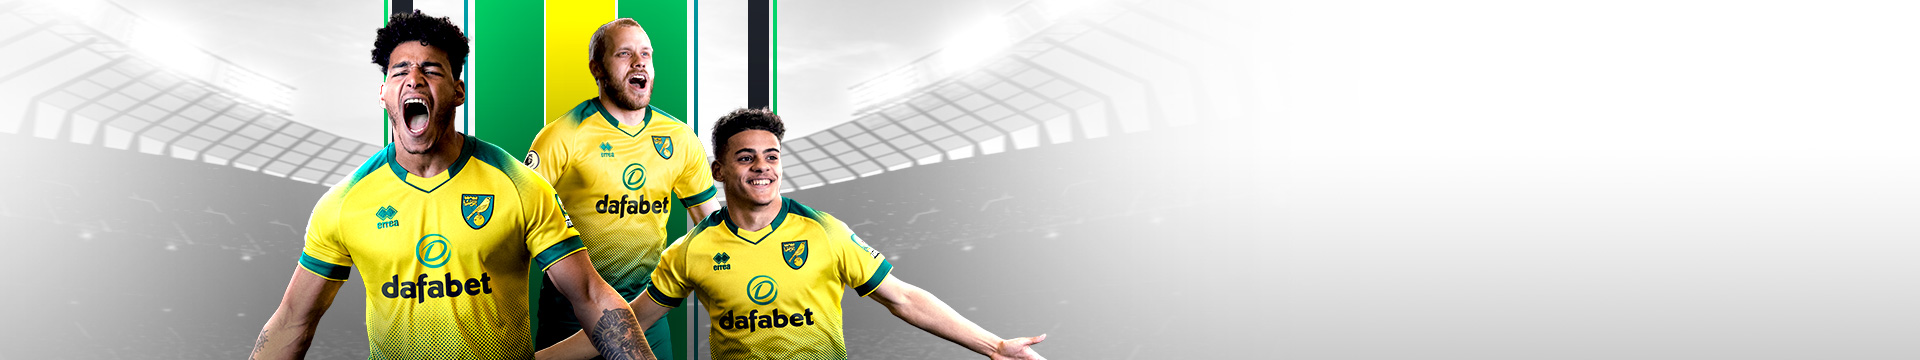 Cheer for Norwich City FC to WIN